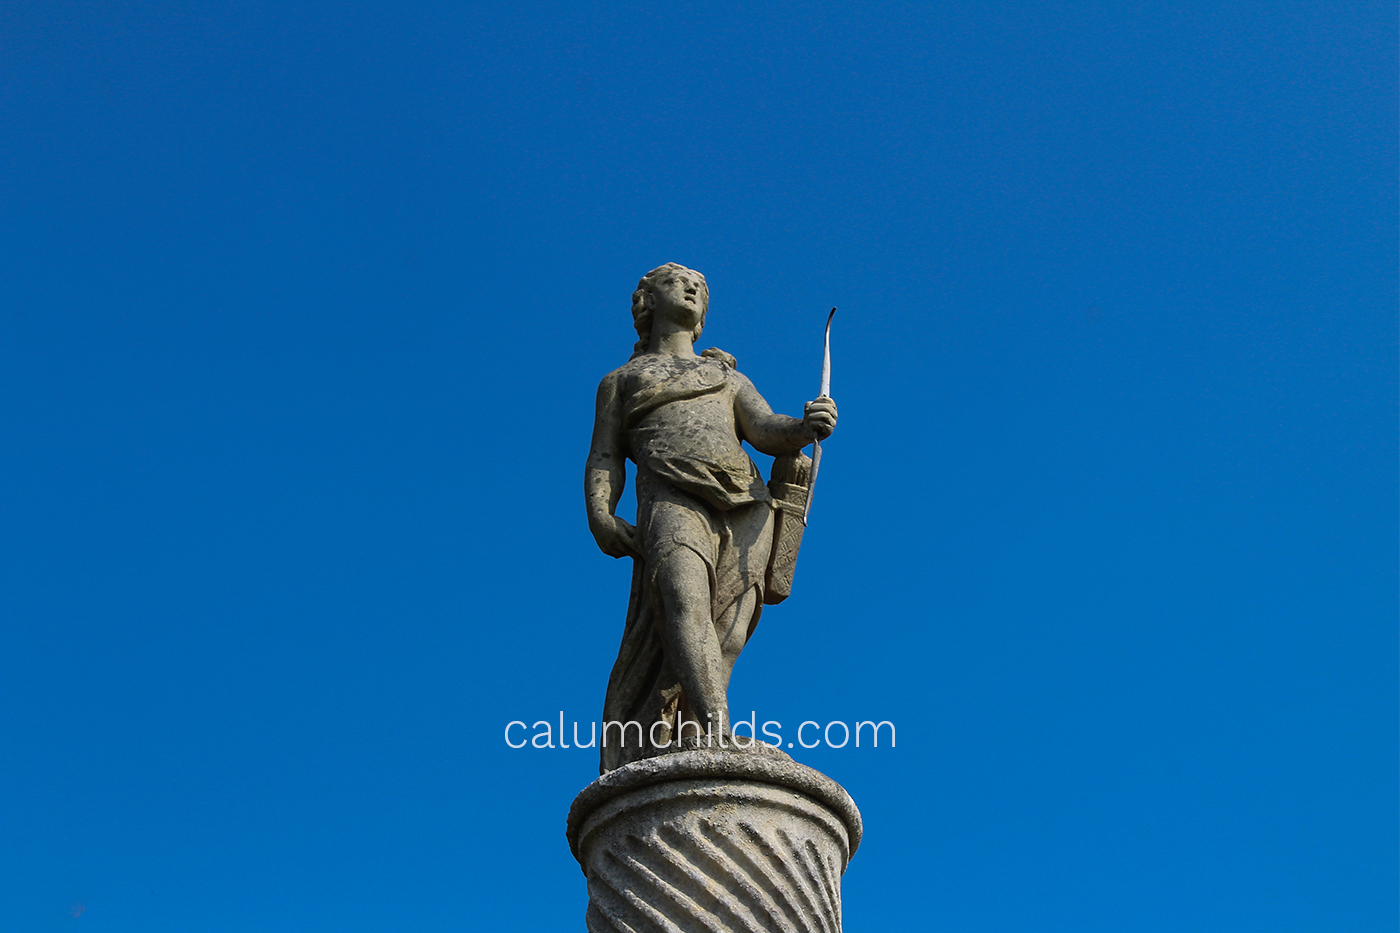 A statue of a woman standing up holding a bow and arrow.